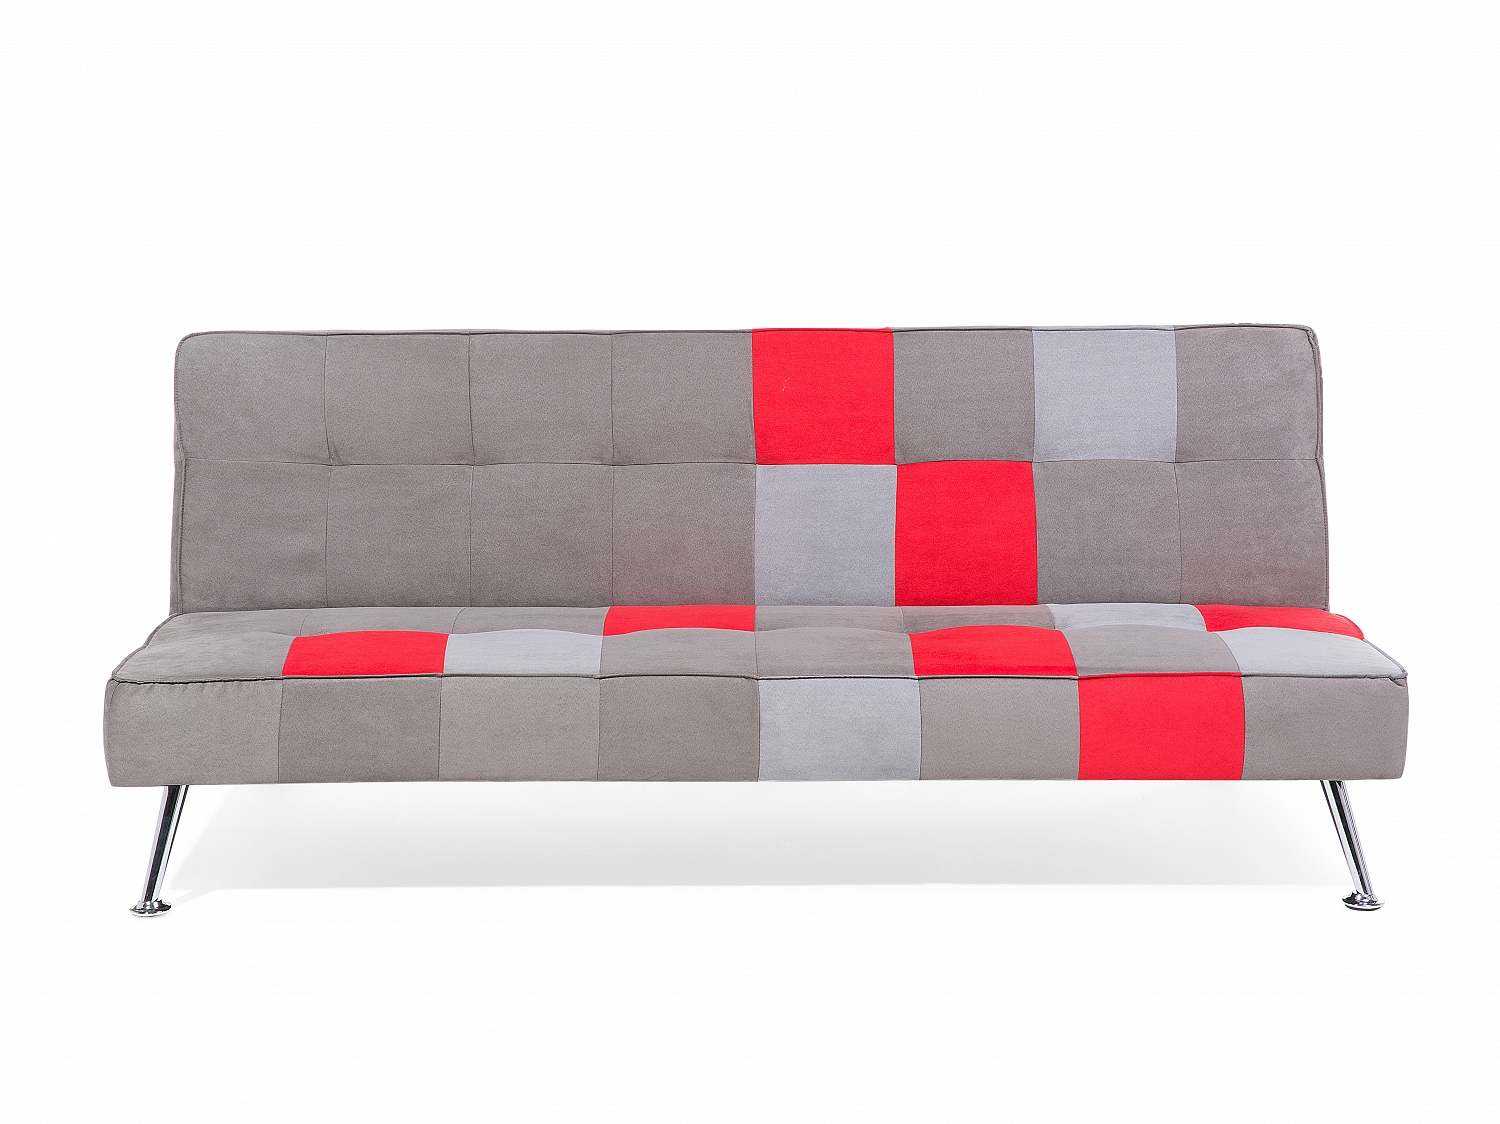 sofa grau patchwork schlafsofa couch schlafcouch bettsofa wohnzimmer polyester ebay. Black Bedroom Furniture Sets. Home Design Ideas